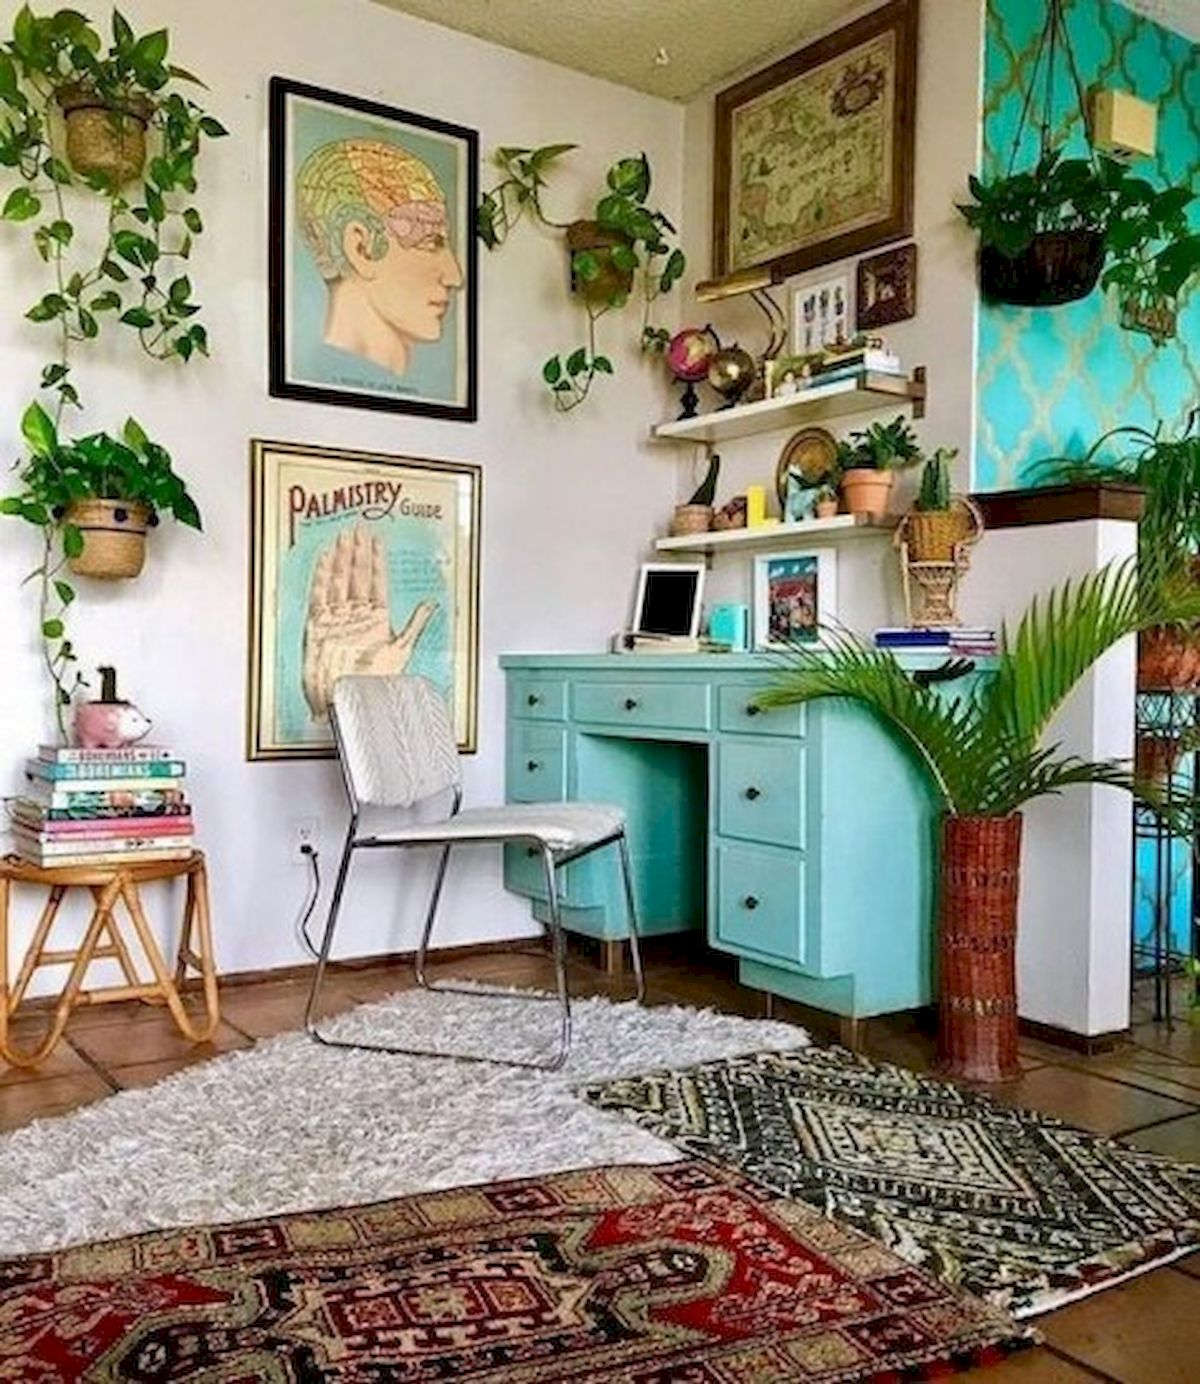 45 Adorable Home Office Decoration Ideas (45)